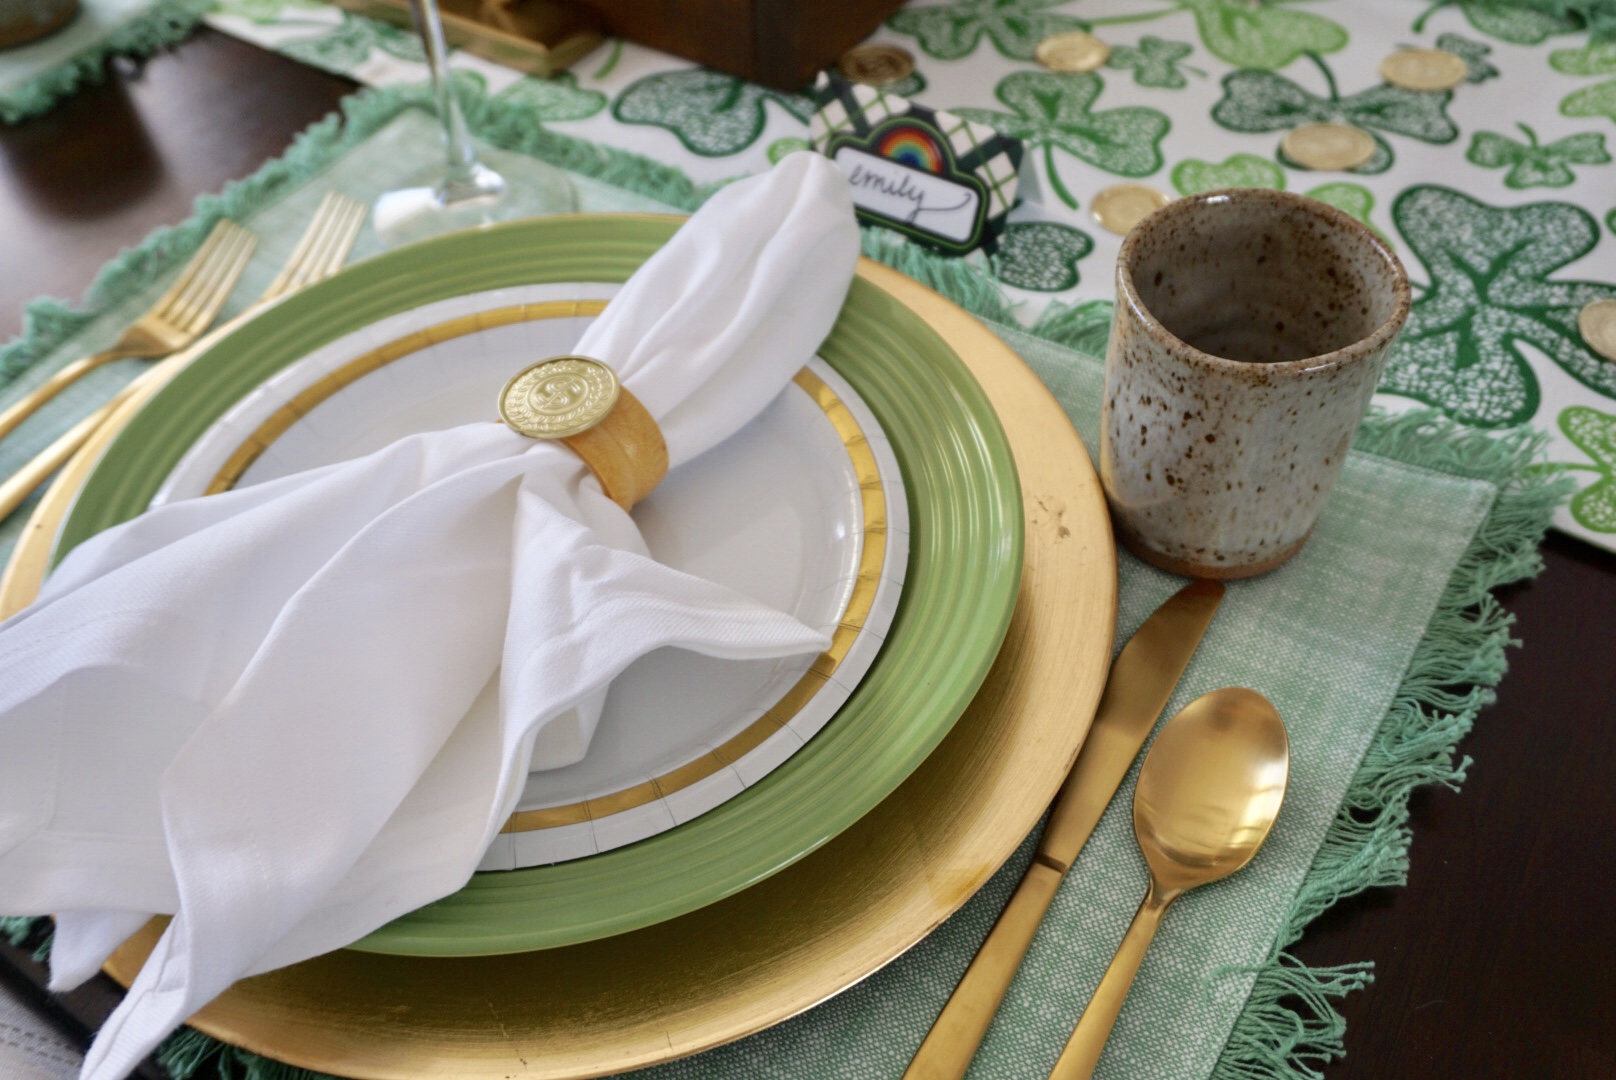 DIY gold coin napkin rings for St. Patrick's Day dinner table.